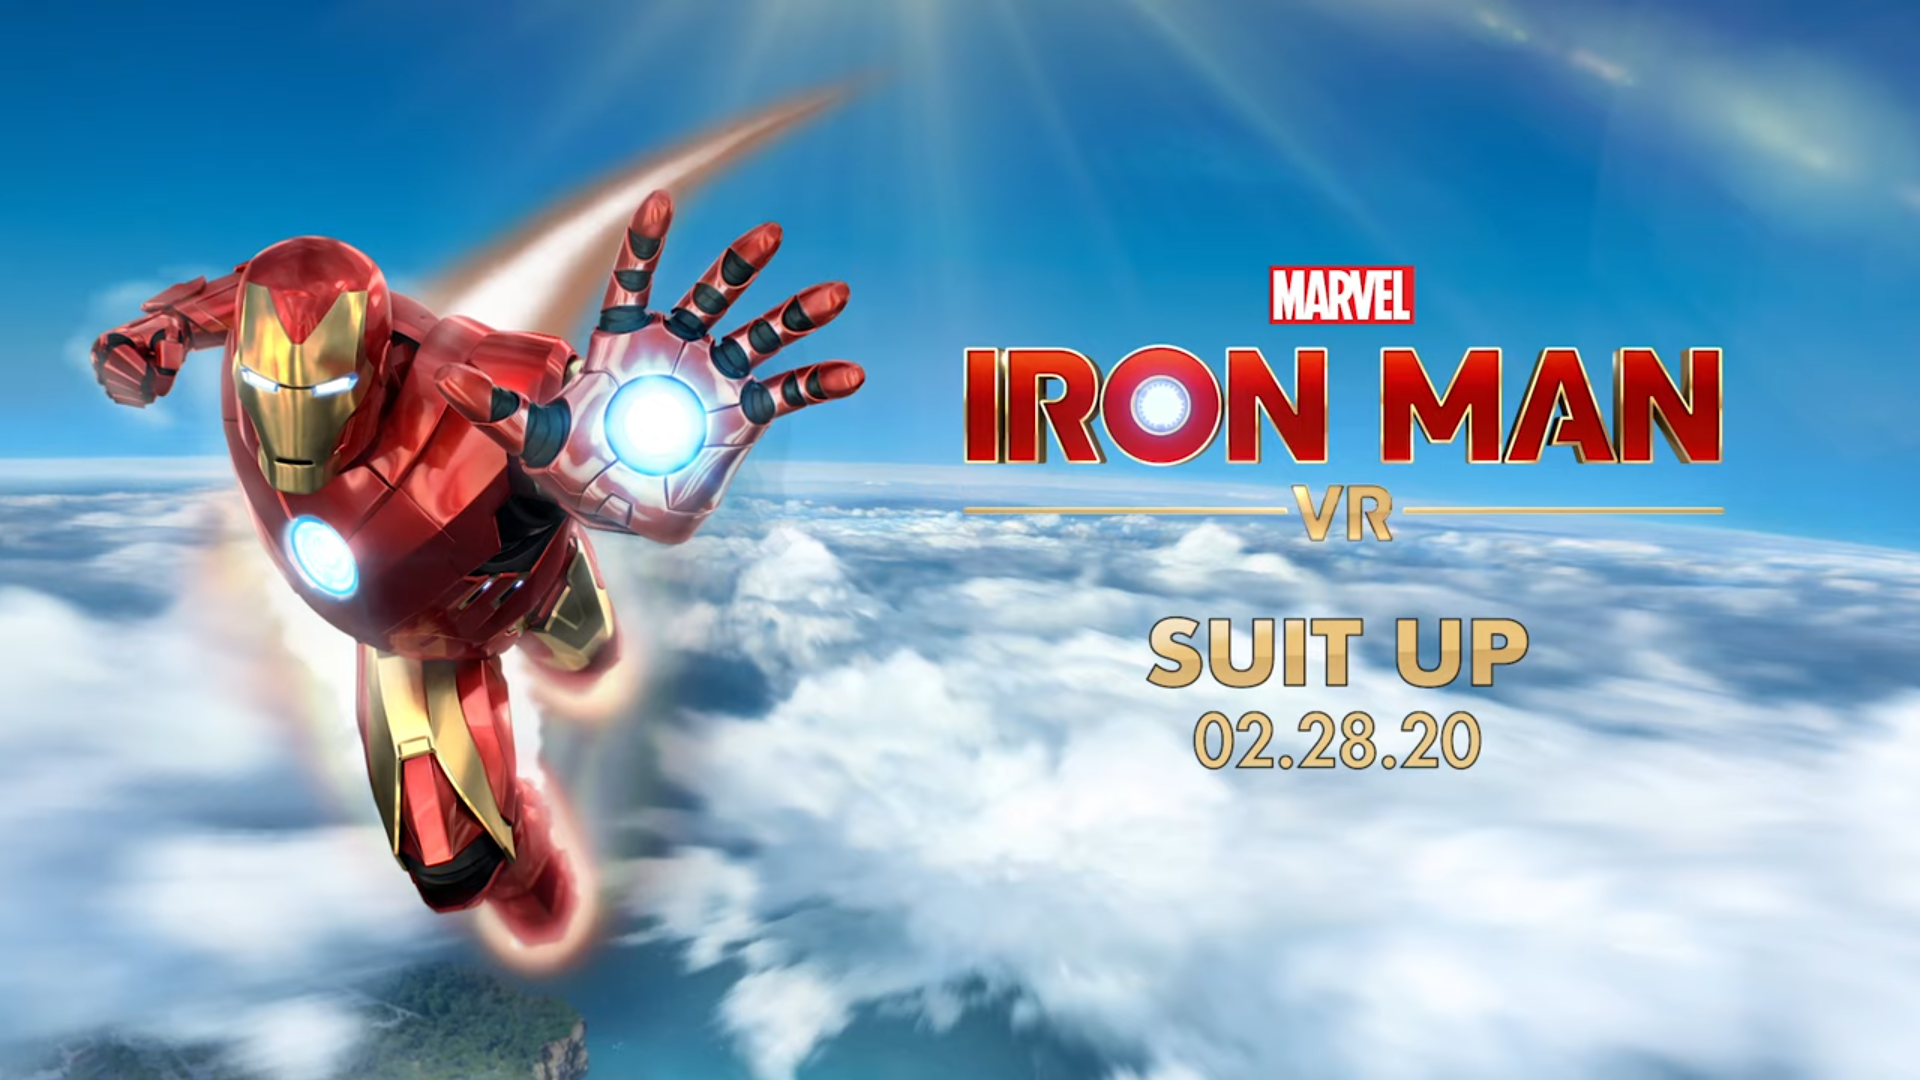 Ironman VR Release Date - Now You Can Be The Tony Stark